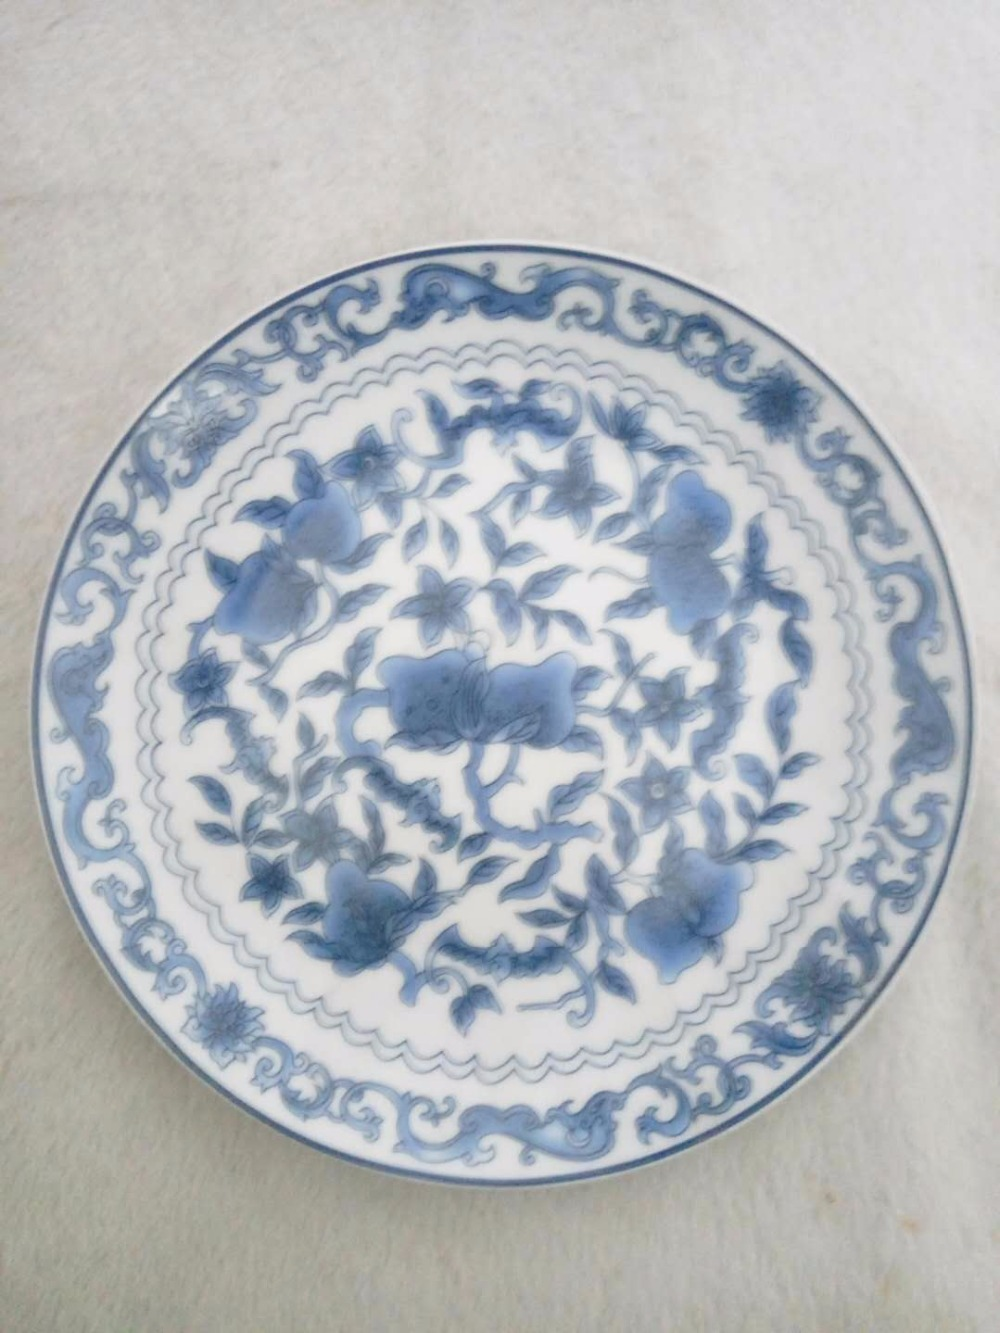 US $22 39 20% OFF TNUKK Exquisite Chinese handmade blue and white porcelain  plate, flower pattern, meaning rich and auspicious  -in Figurines &